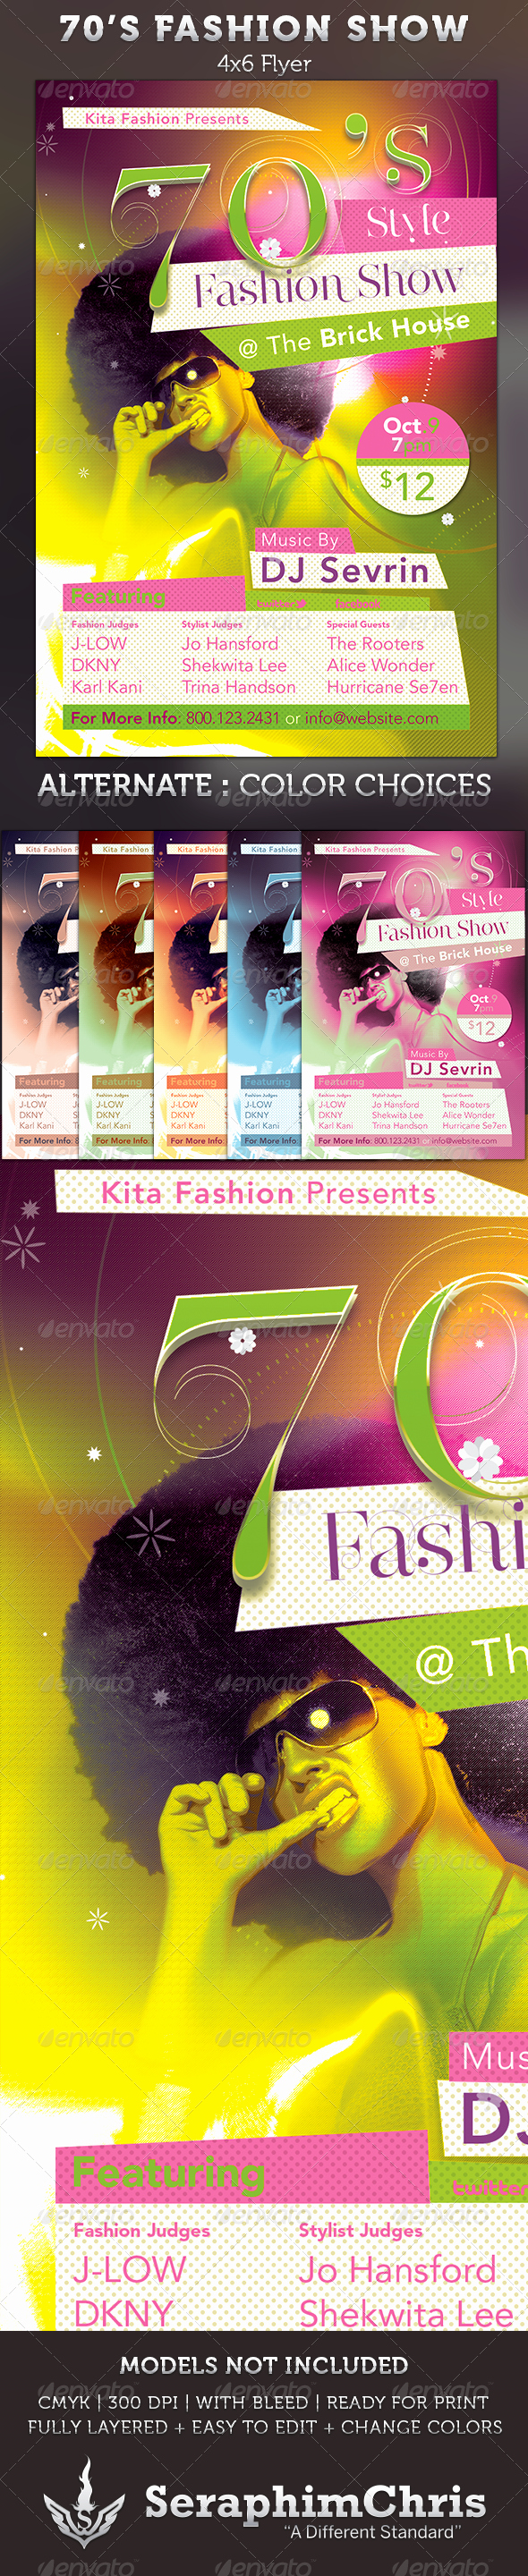 Fashion Show Flyer Template Inspirational 70 S Fashion Show Flyer Template by Seraphimchris